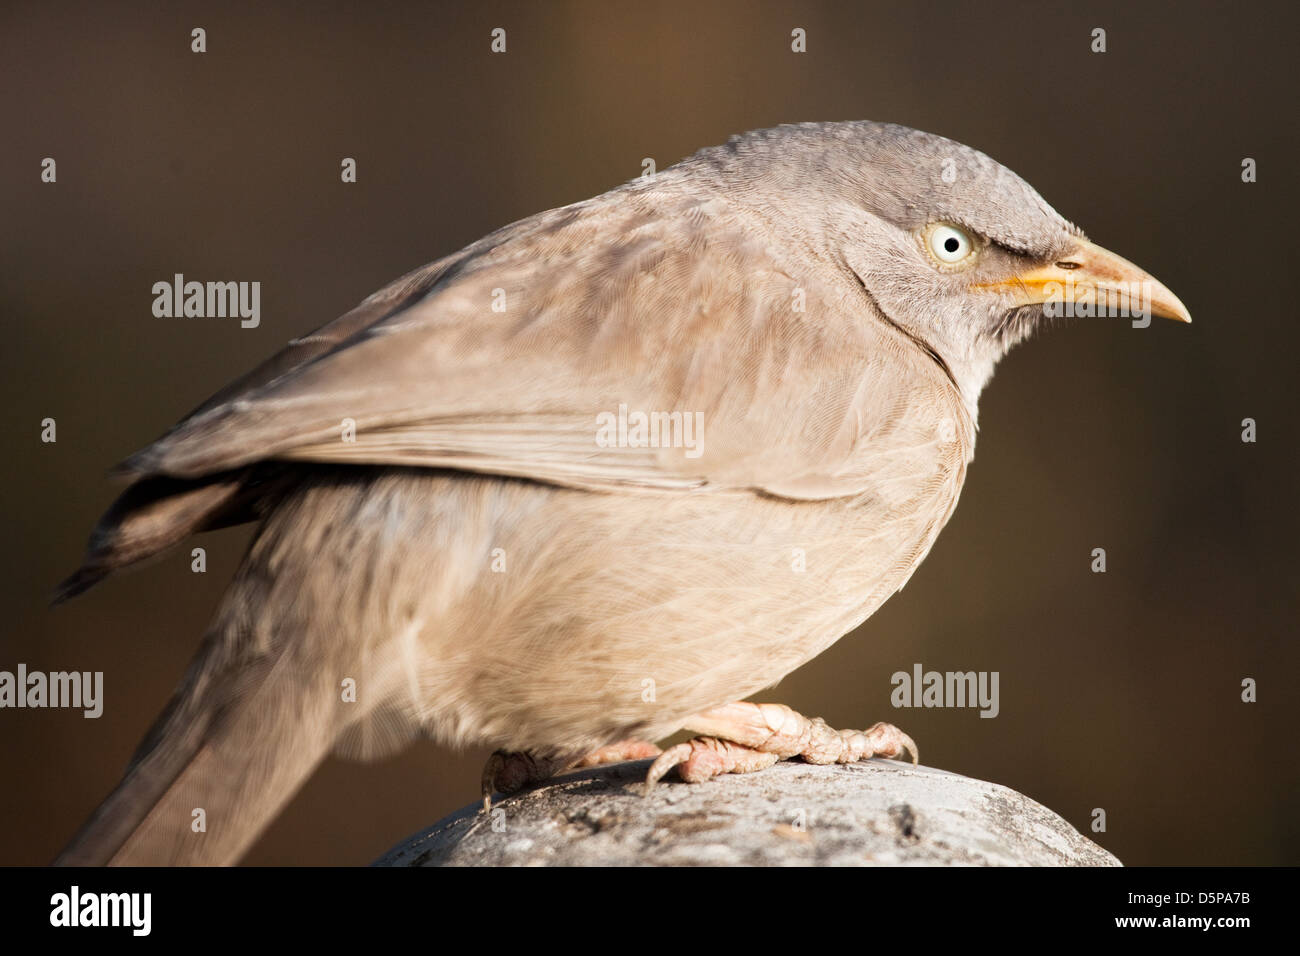 Fat angry bird - Stock Image